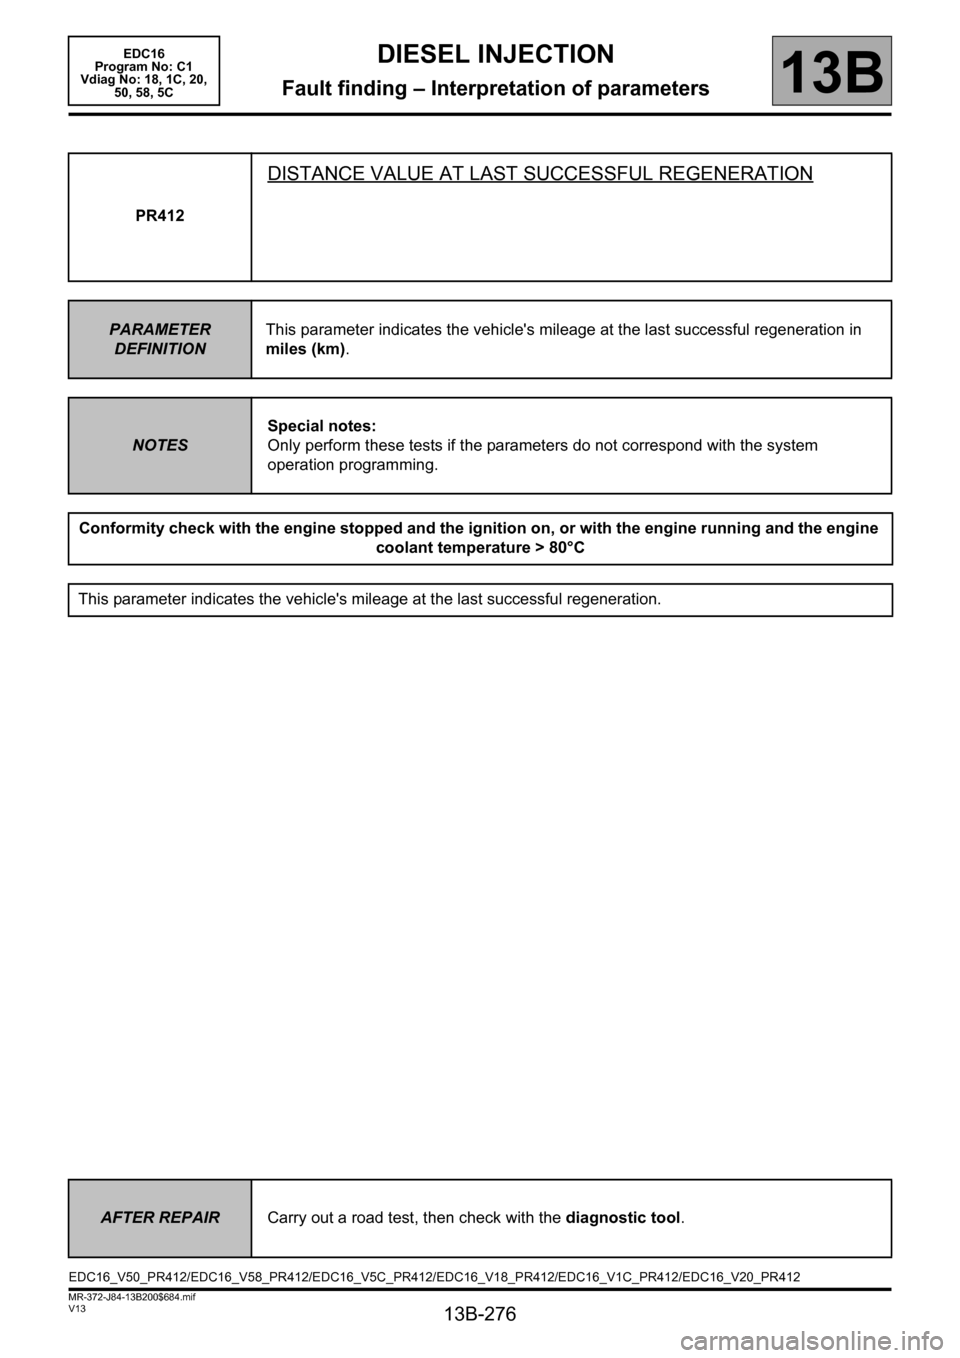 RENAULT SCENIC 2011 J95 / 3.G Engine And Peripherals EDC16 Workshop Manual, Page 276